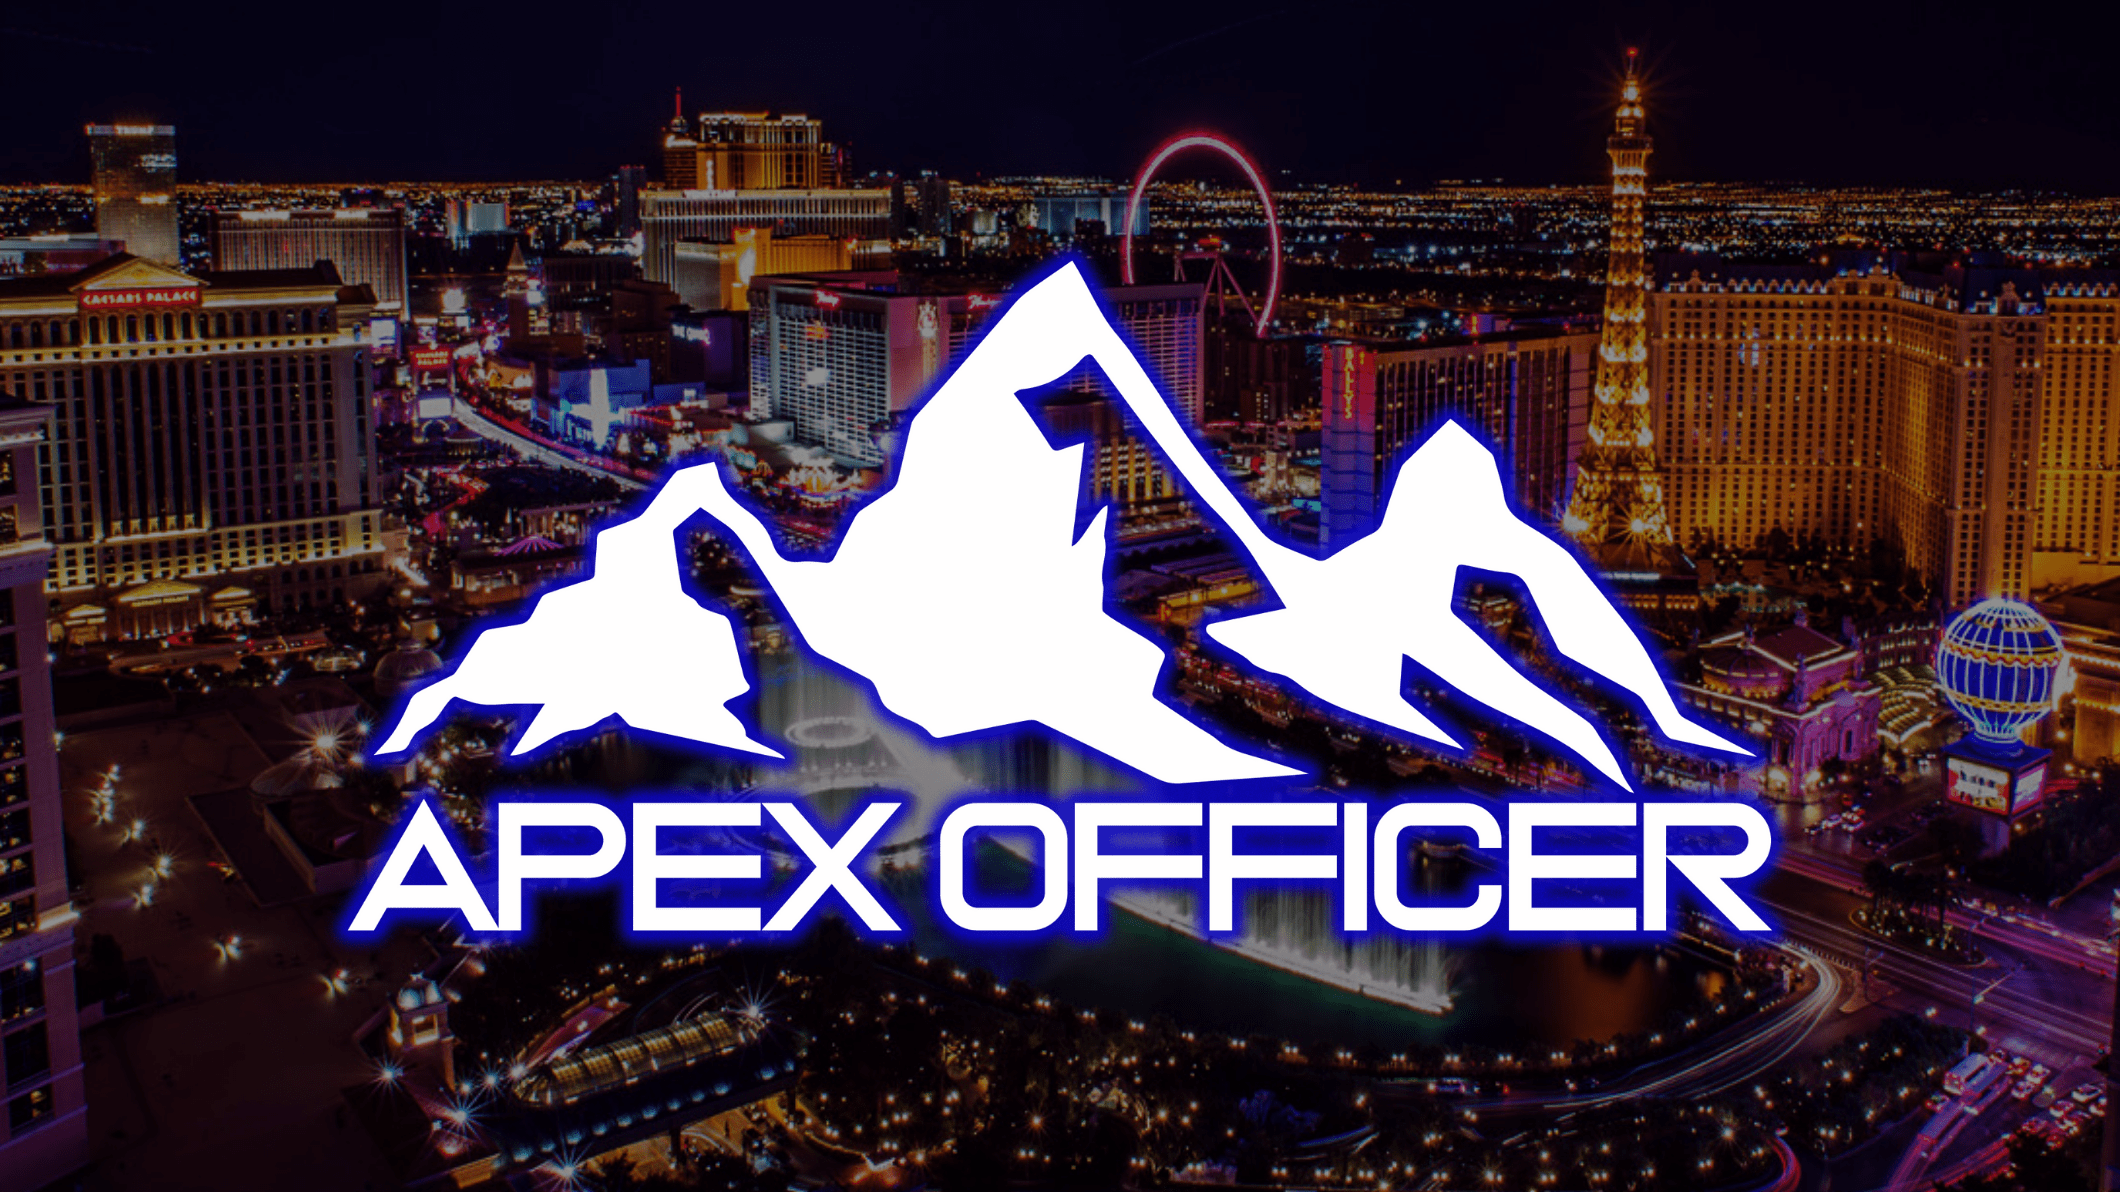 Apex Officer is the premier provider of VRtraining simulators for police officers and law enforcement agencies.